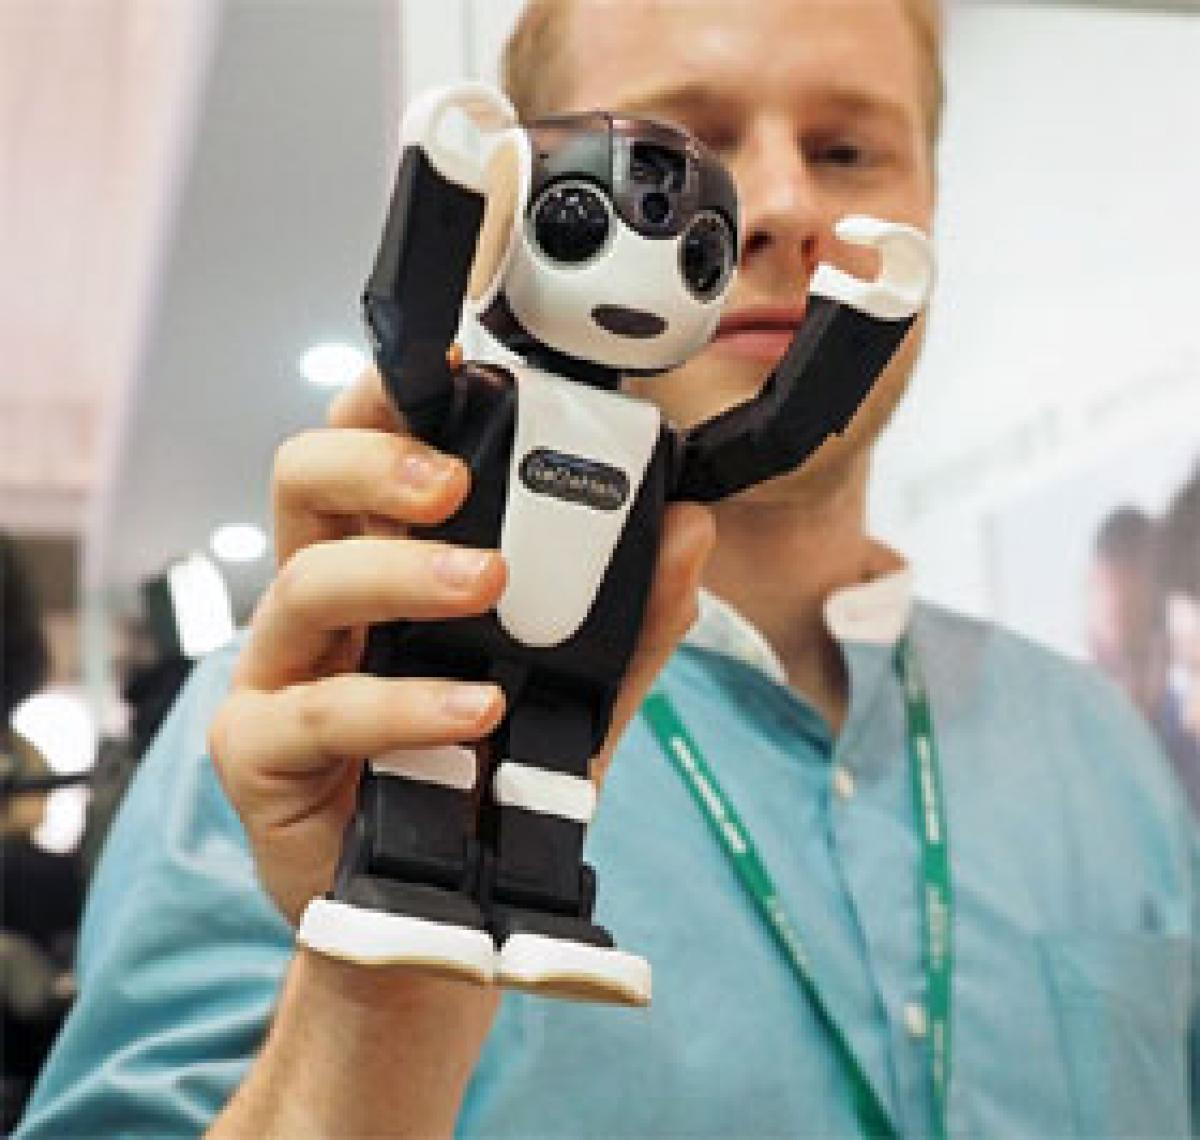 Smart robot phone that can dance if you wish